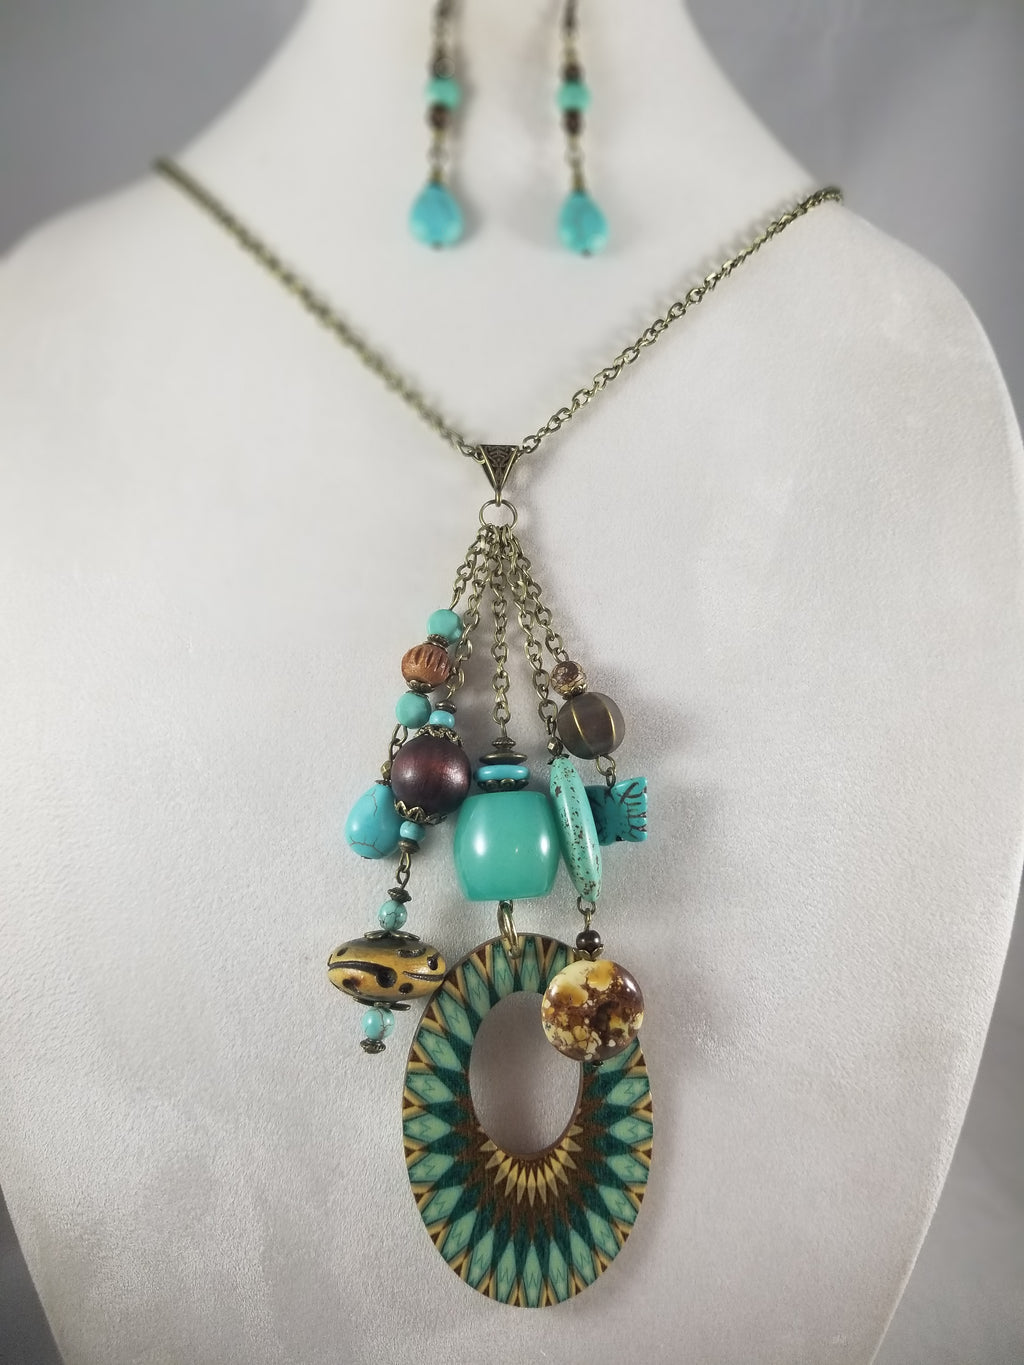 Sonora Necklace with Earrings